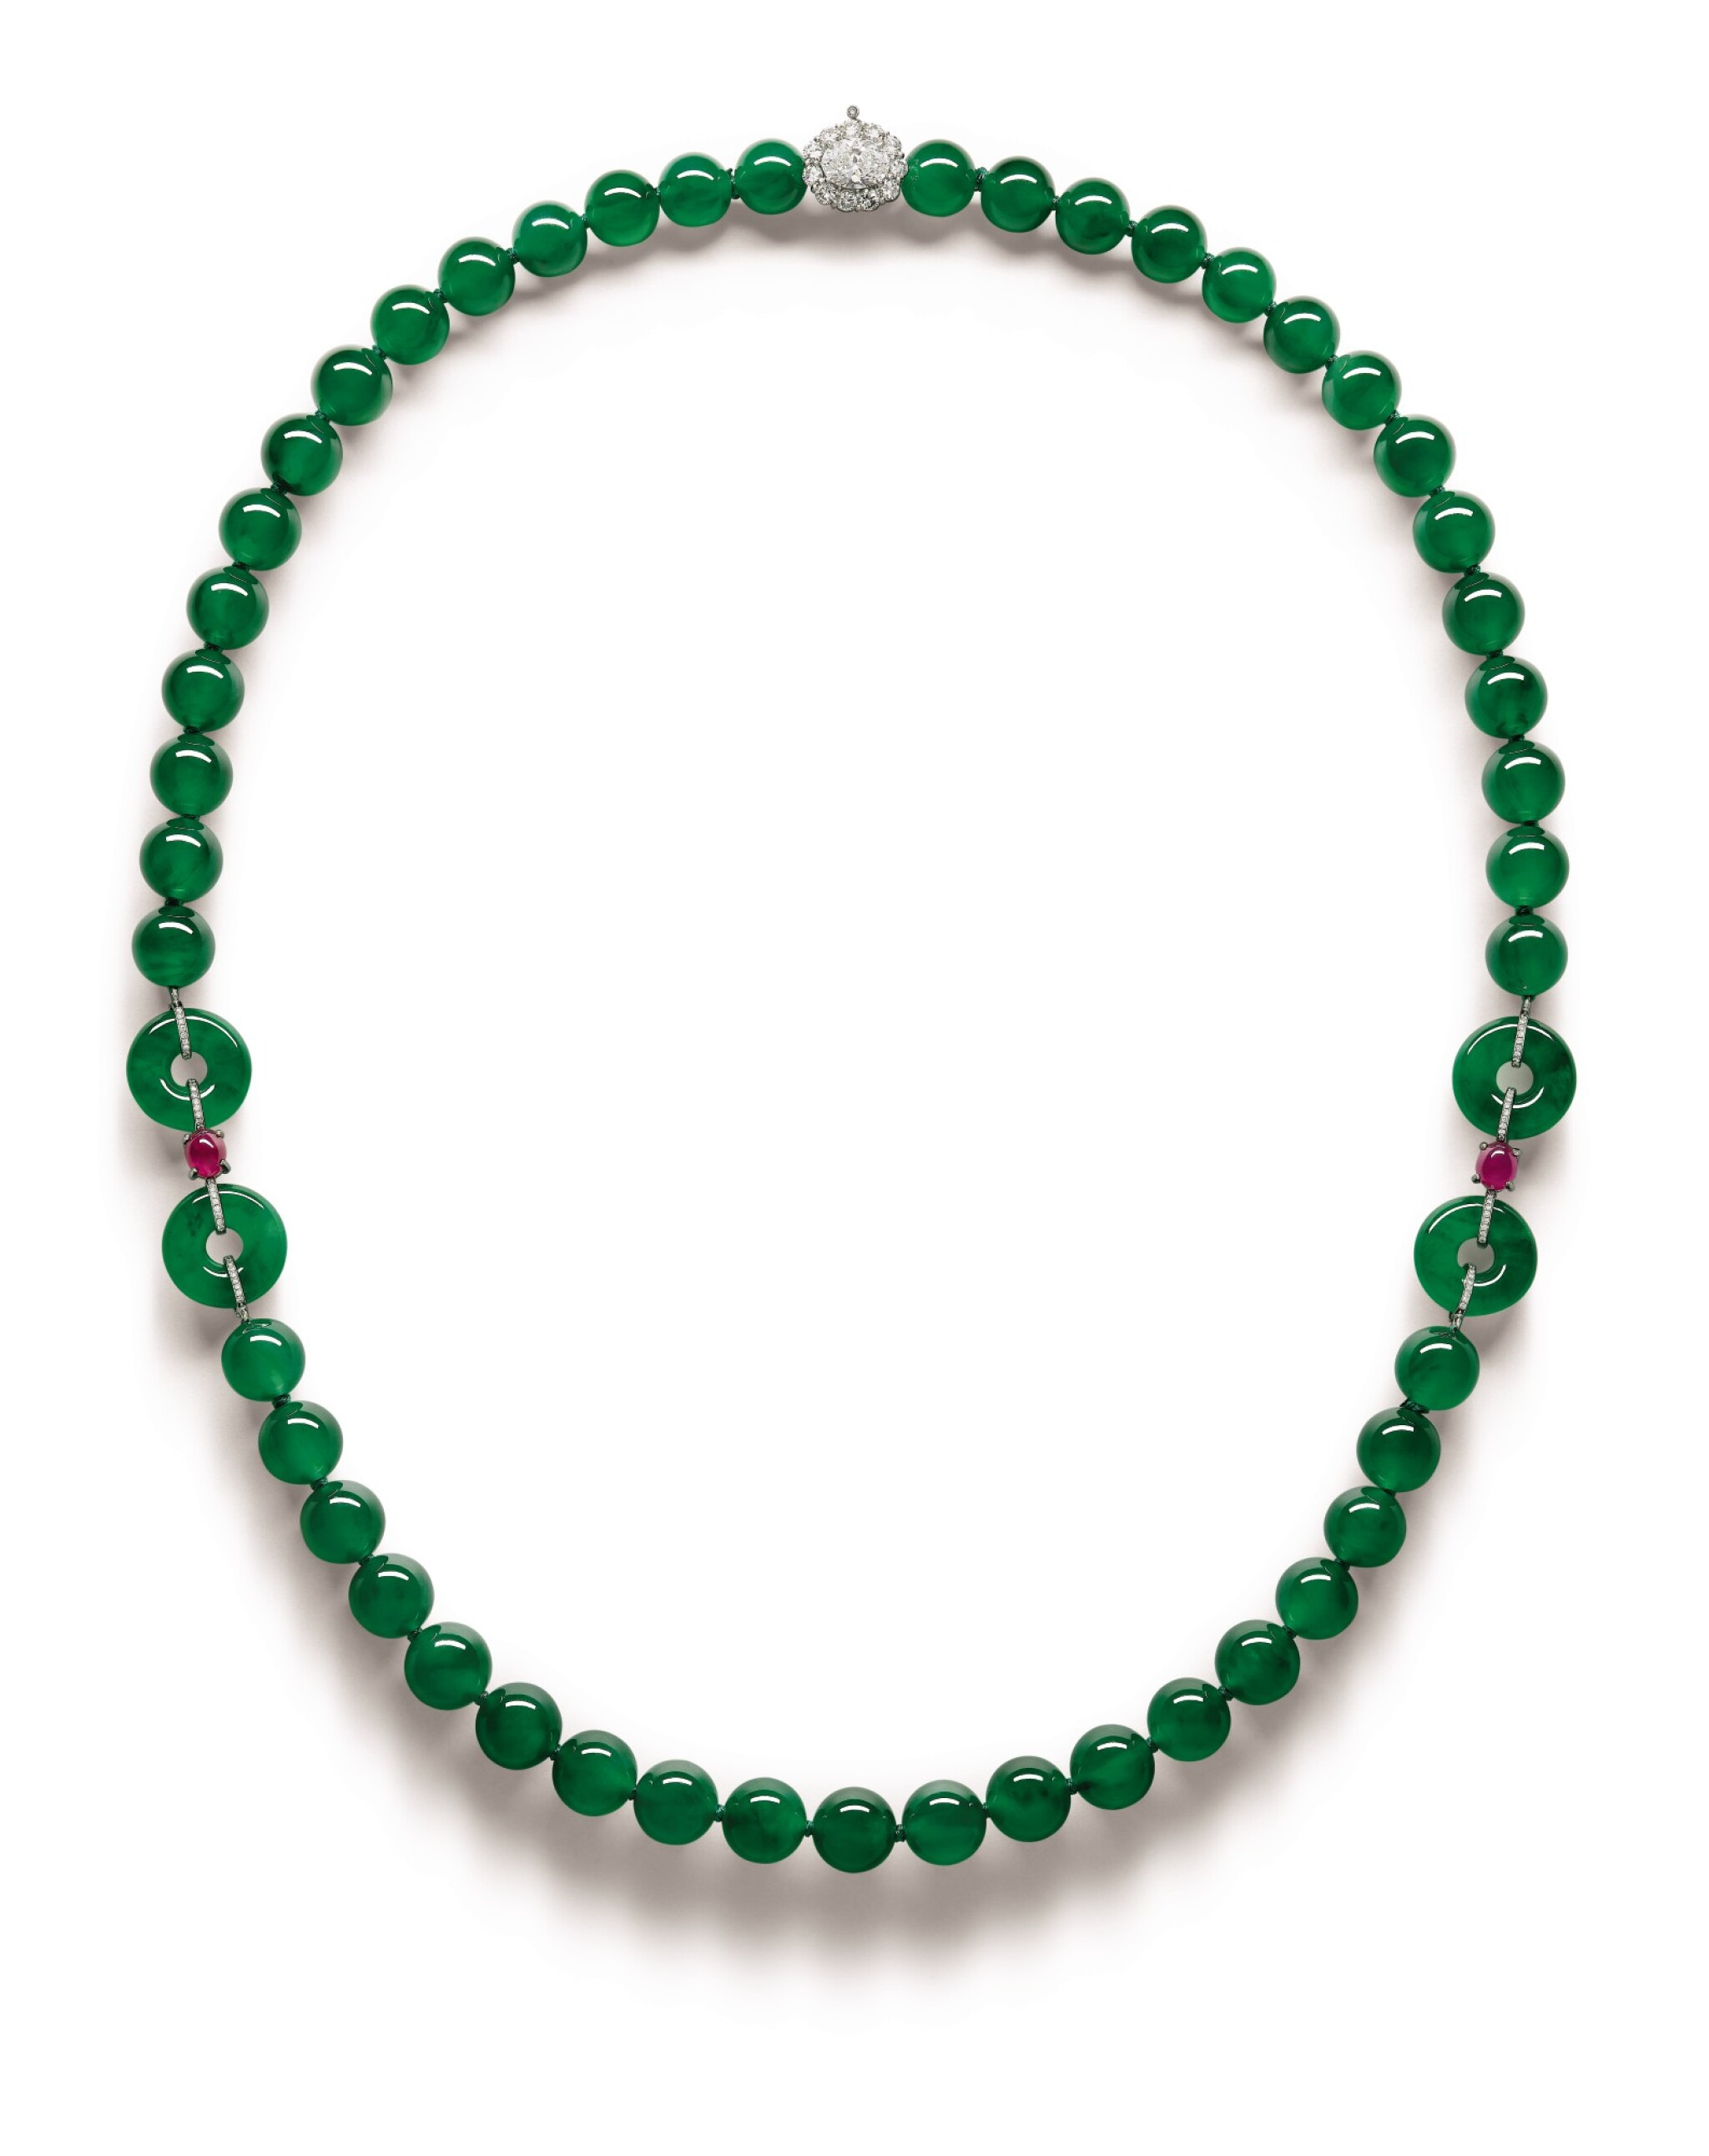 View full screen - View 1 of Lot 1765. A Fine and Unique Jadeite Bead, Diamond and Ruby Necklace | 【四季平安】天然翡翠珠 配 鑽石 及 紅寶石 項鏈.